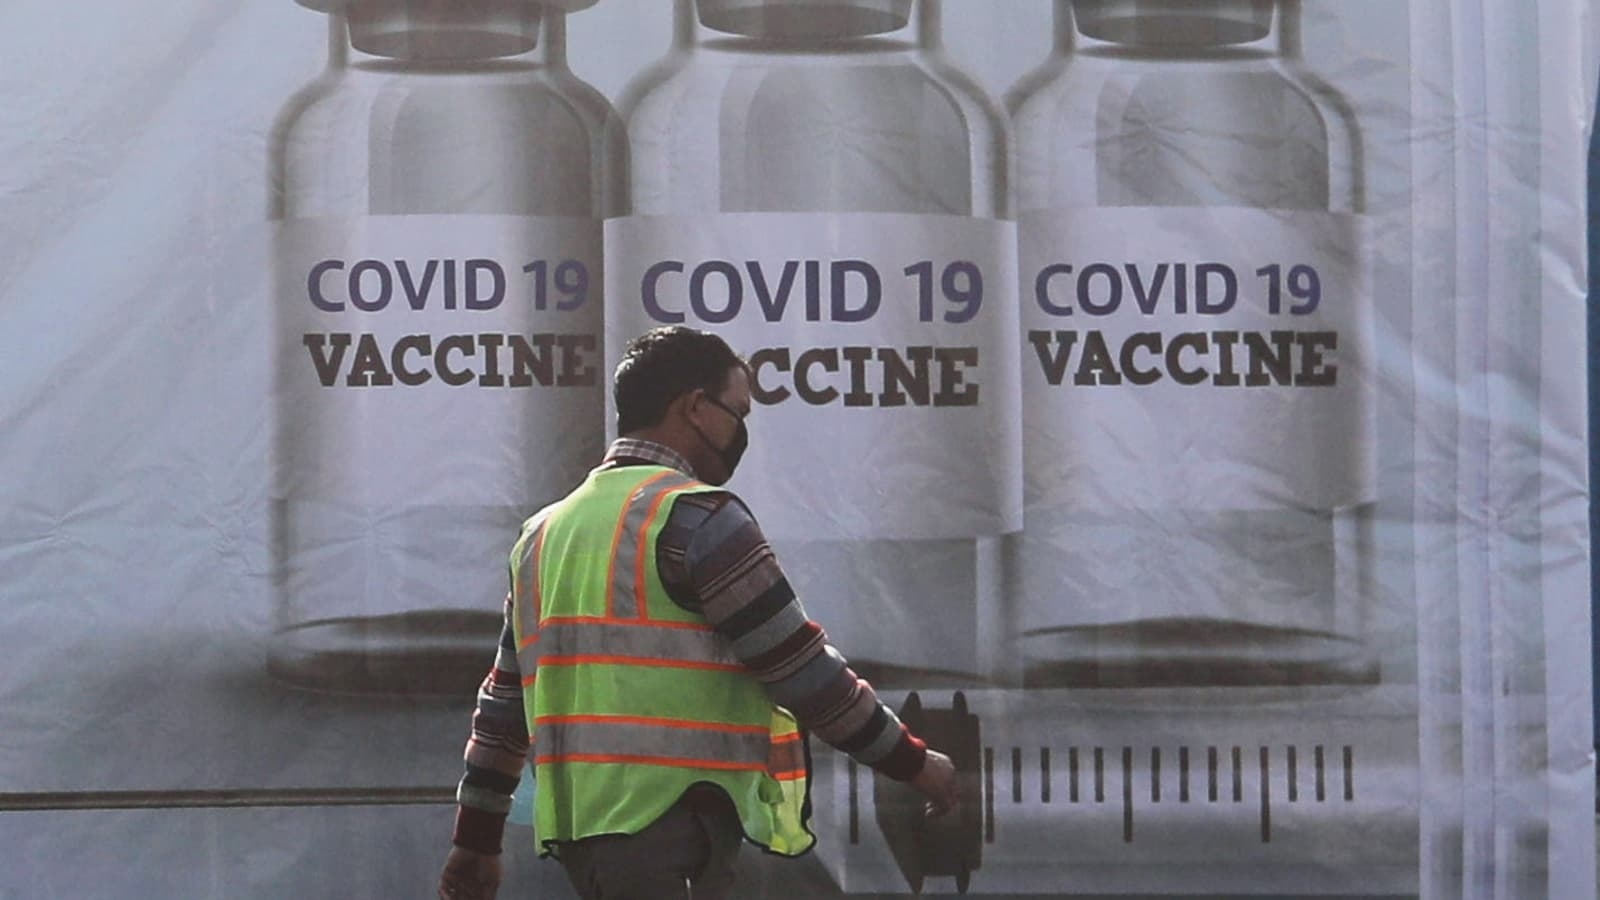 India's drugs regulator on Sunday approved for emergency use two coronavirus vaccines